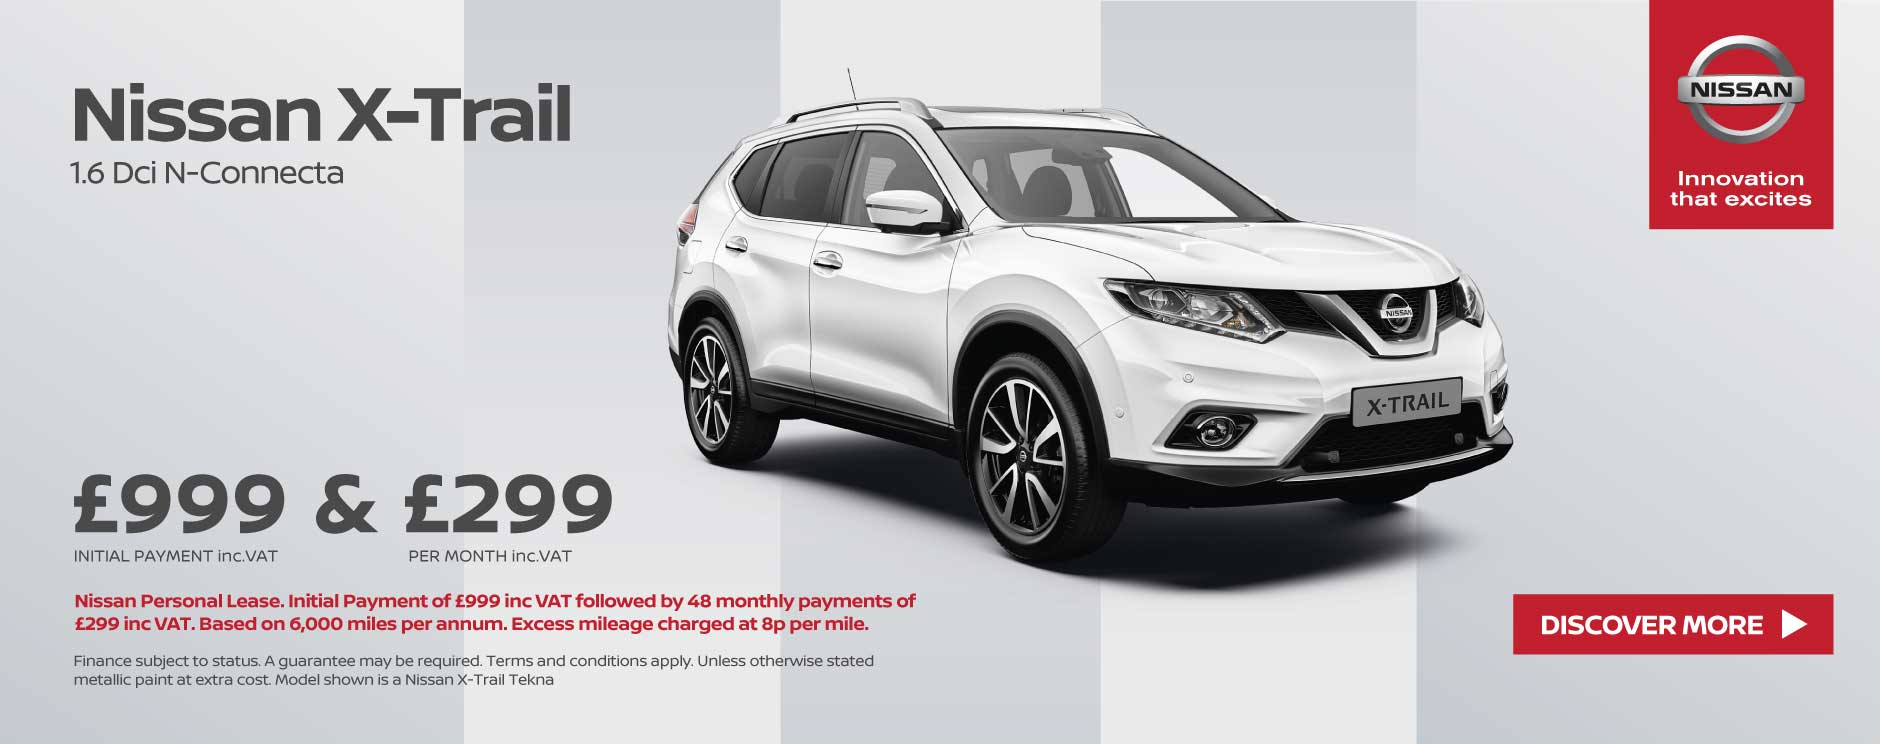 Nissan XTRAIL Easter